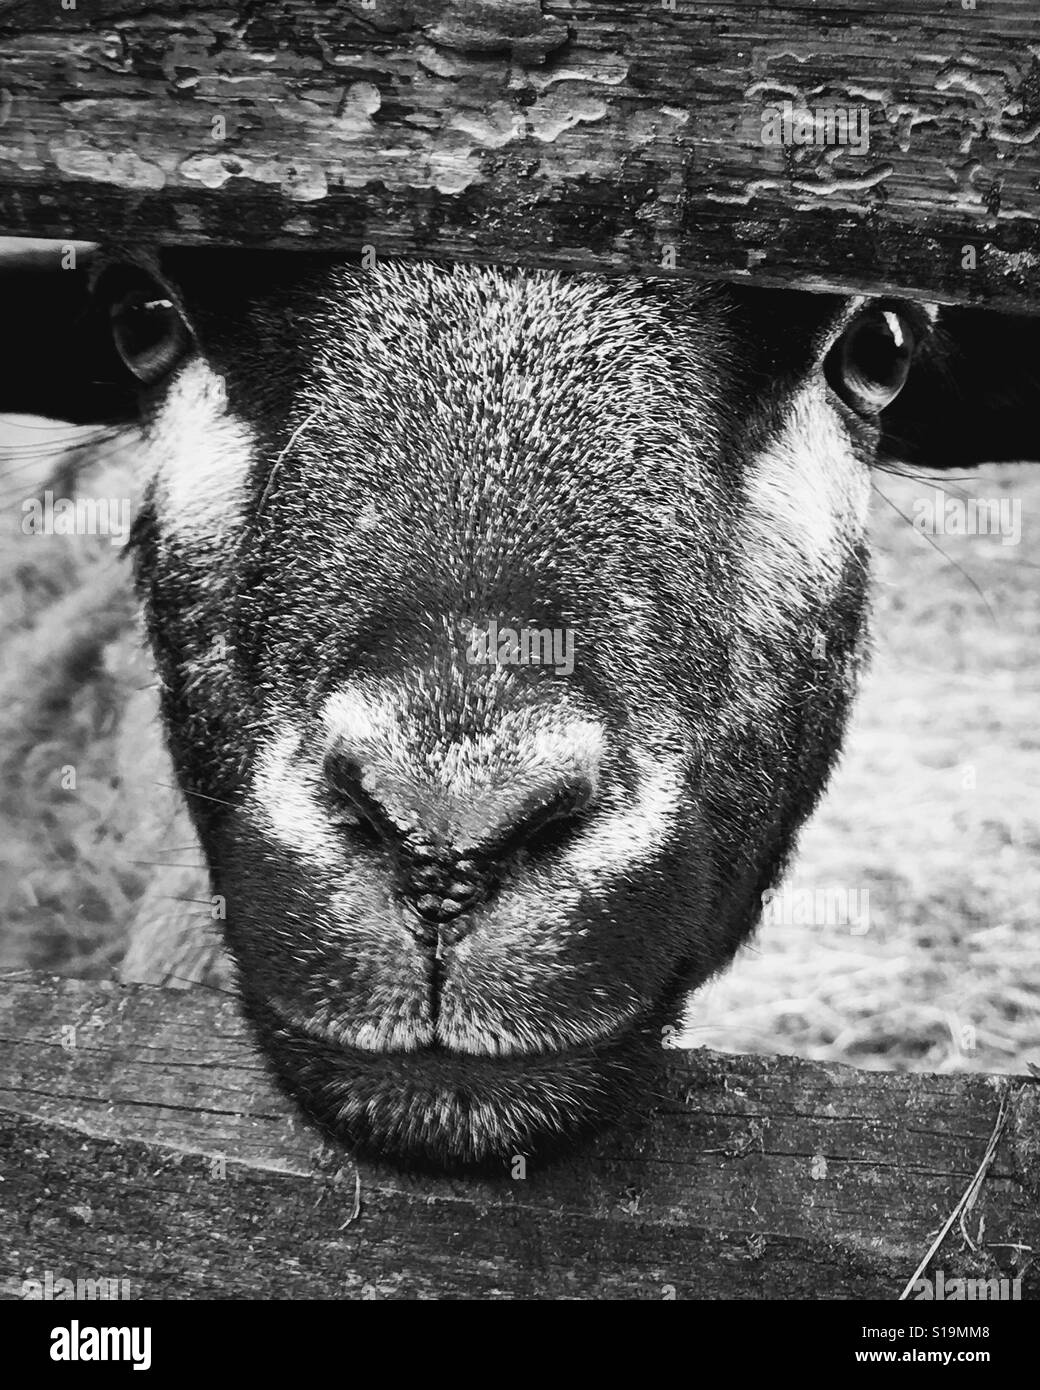 Goat face looking straight at the camera with head between a fence in black and white - Stock Image